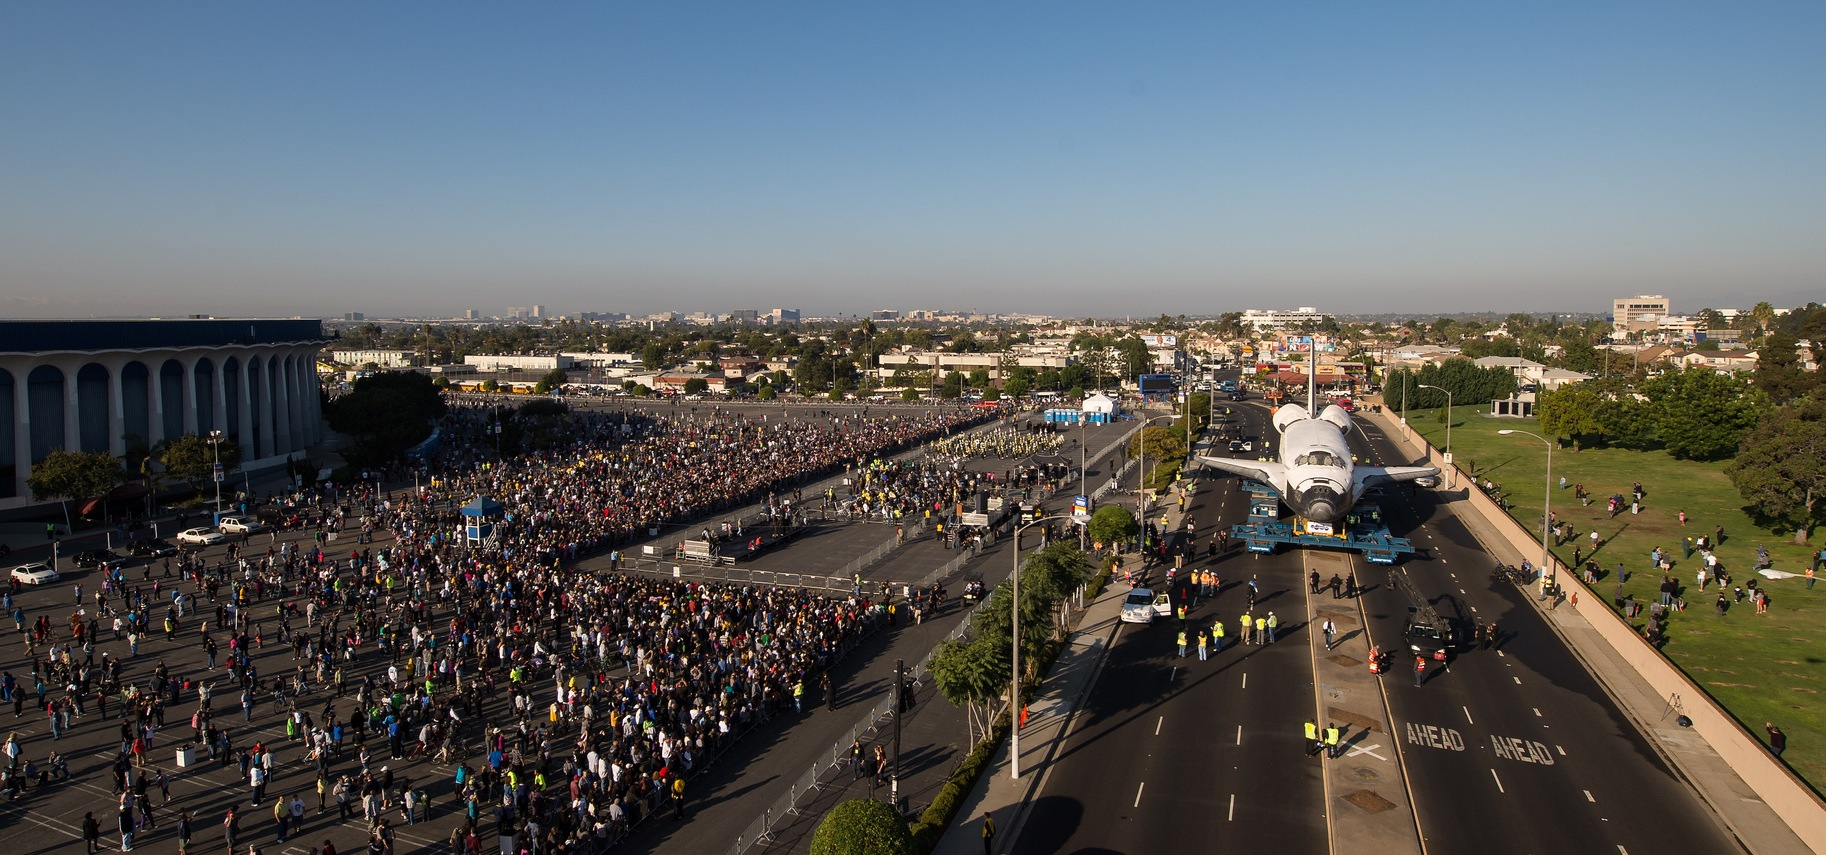 http://www.nasa.gov/centers/dryden/images/content/697130main_Endeavour-crowd-by-Forum.jpg